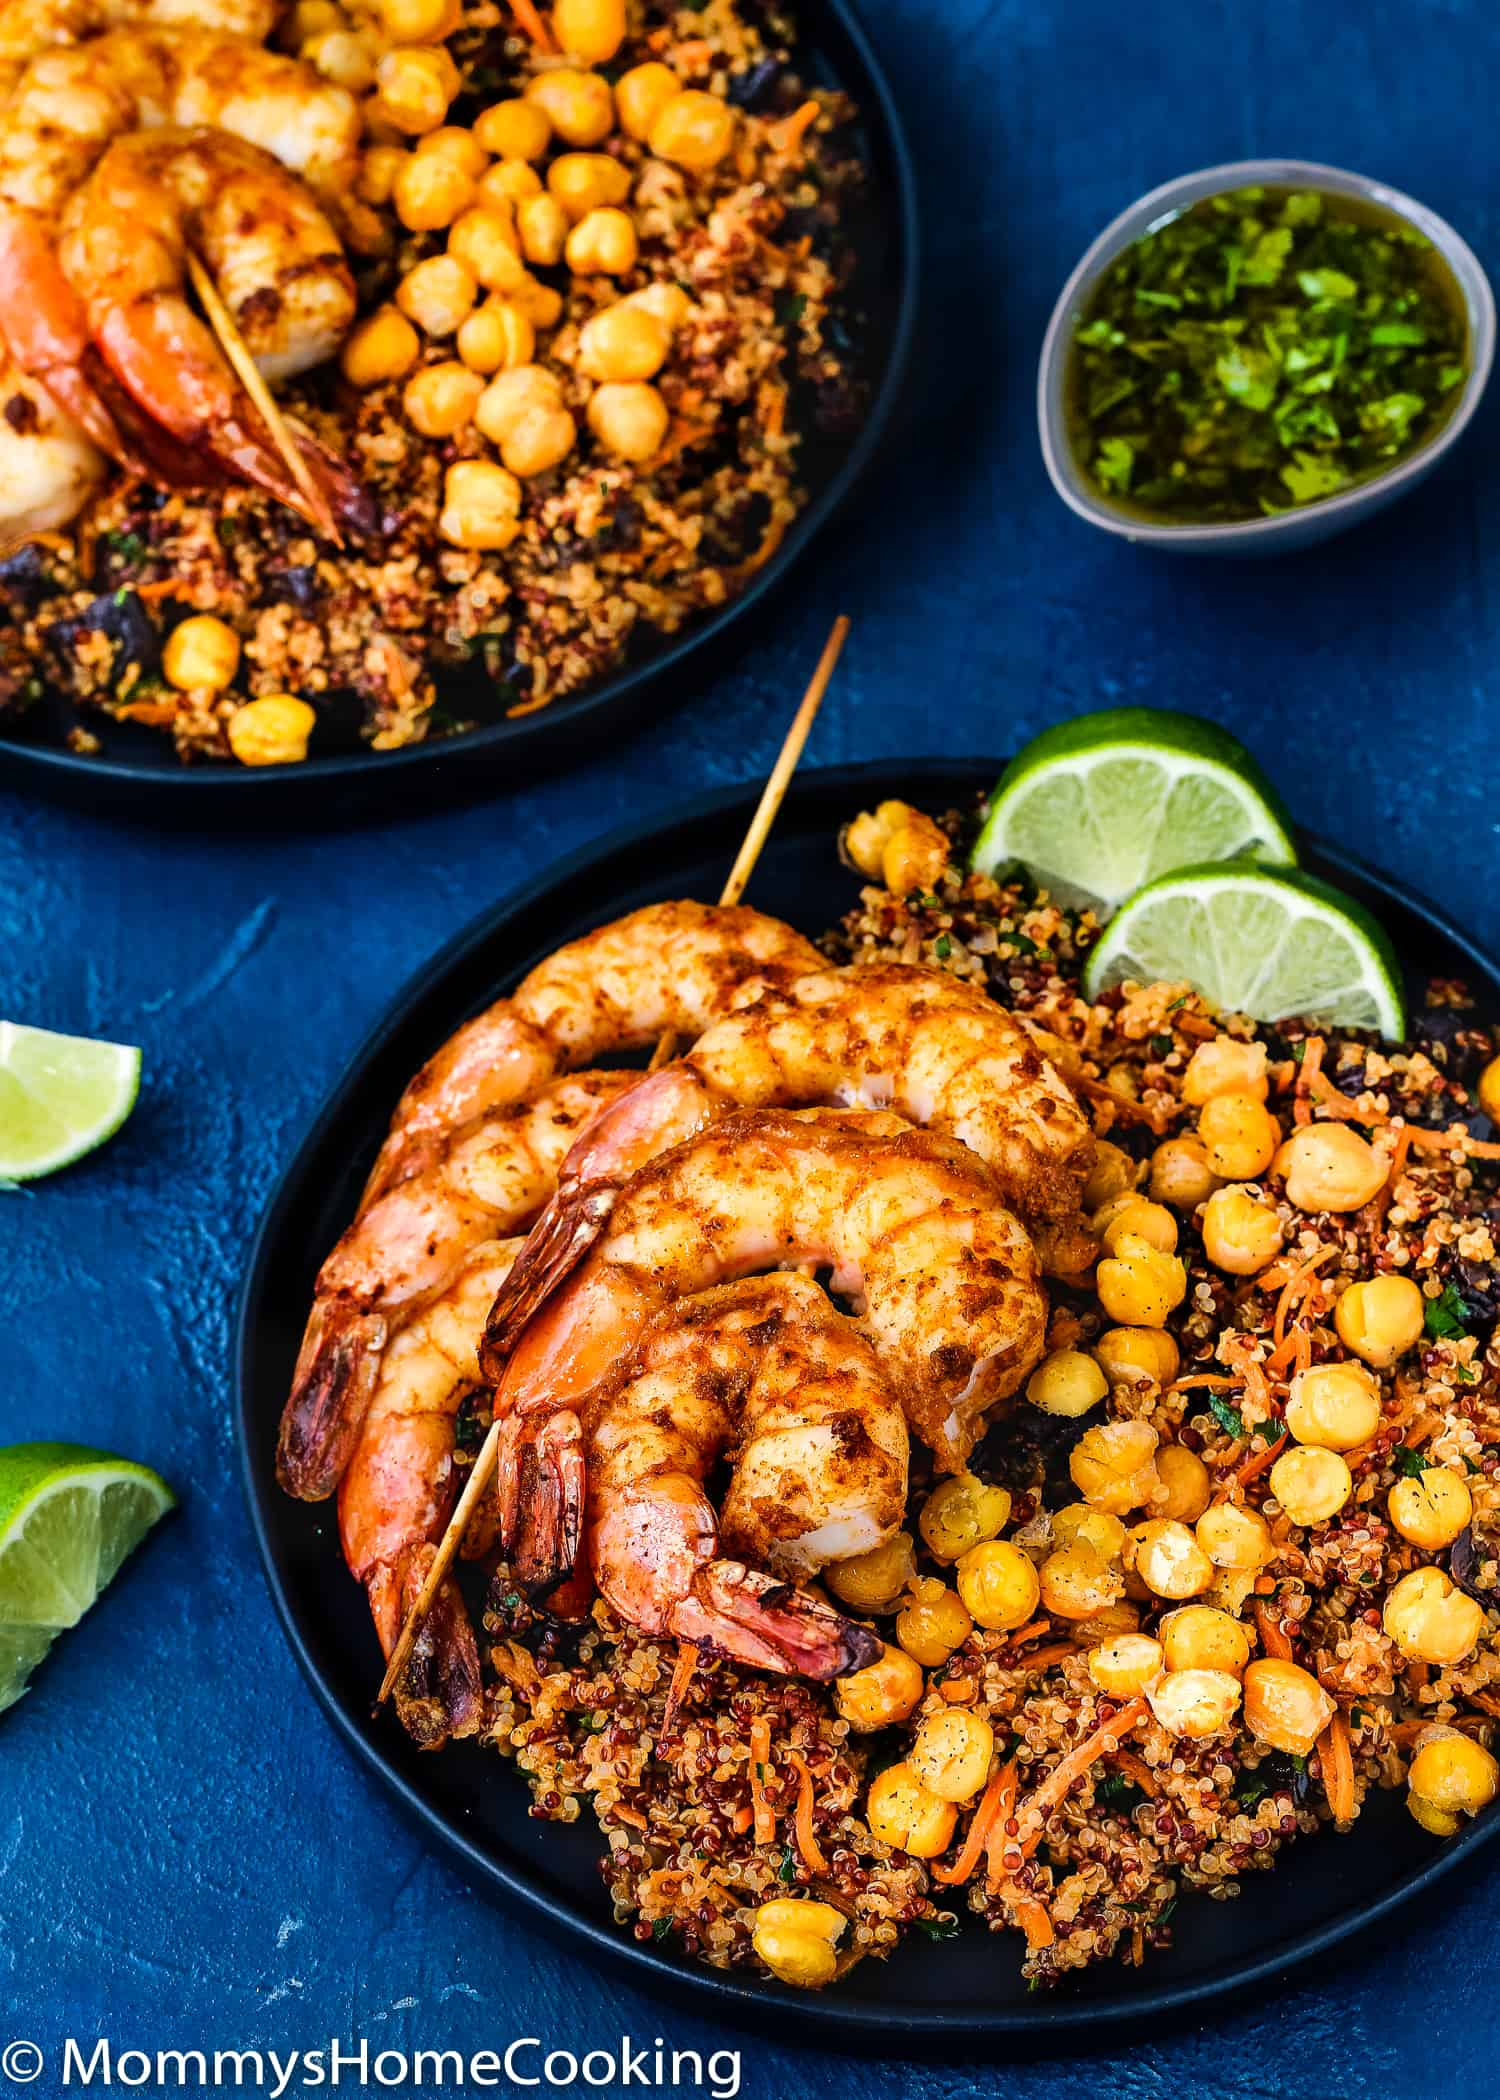 Tasty Moroccan Spiced Shrimp Skewers made with a blend of delicious spices, served with fluffy California Prunes & Quinoa Salad and toasted chickpeas. So exotic and flavorful. https://mommyshomecooking.com